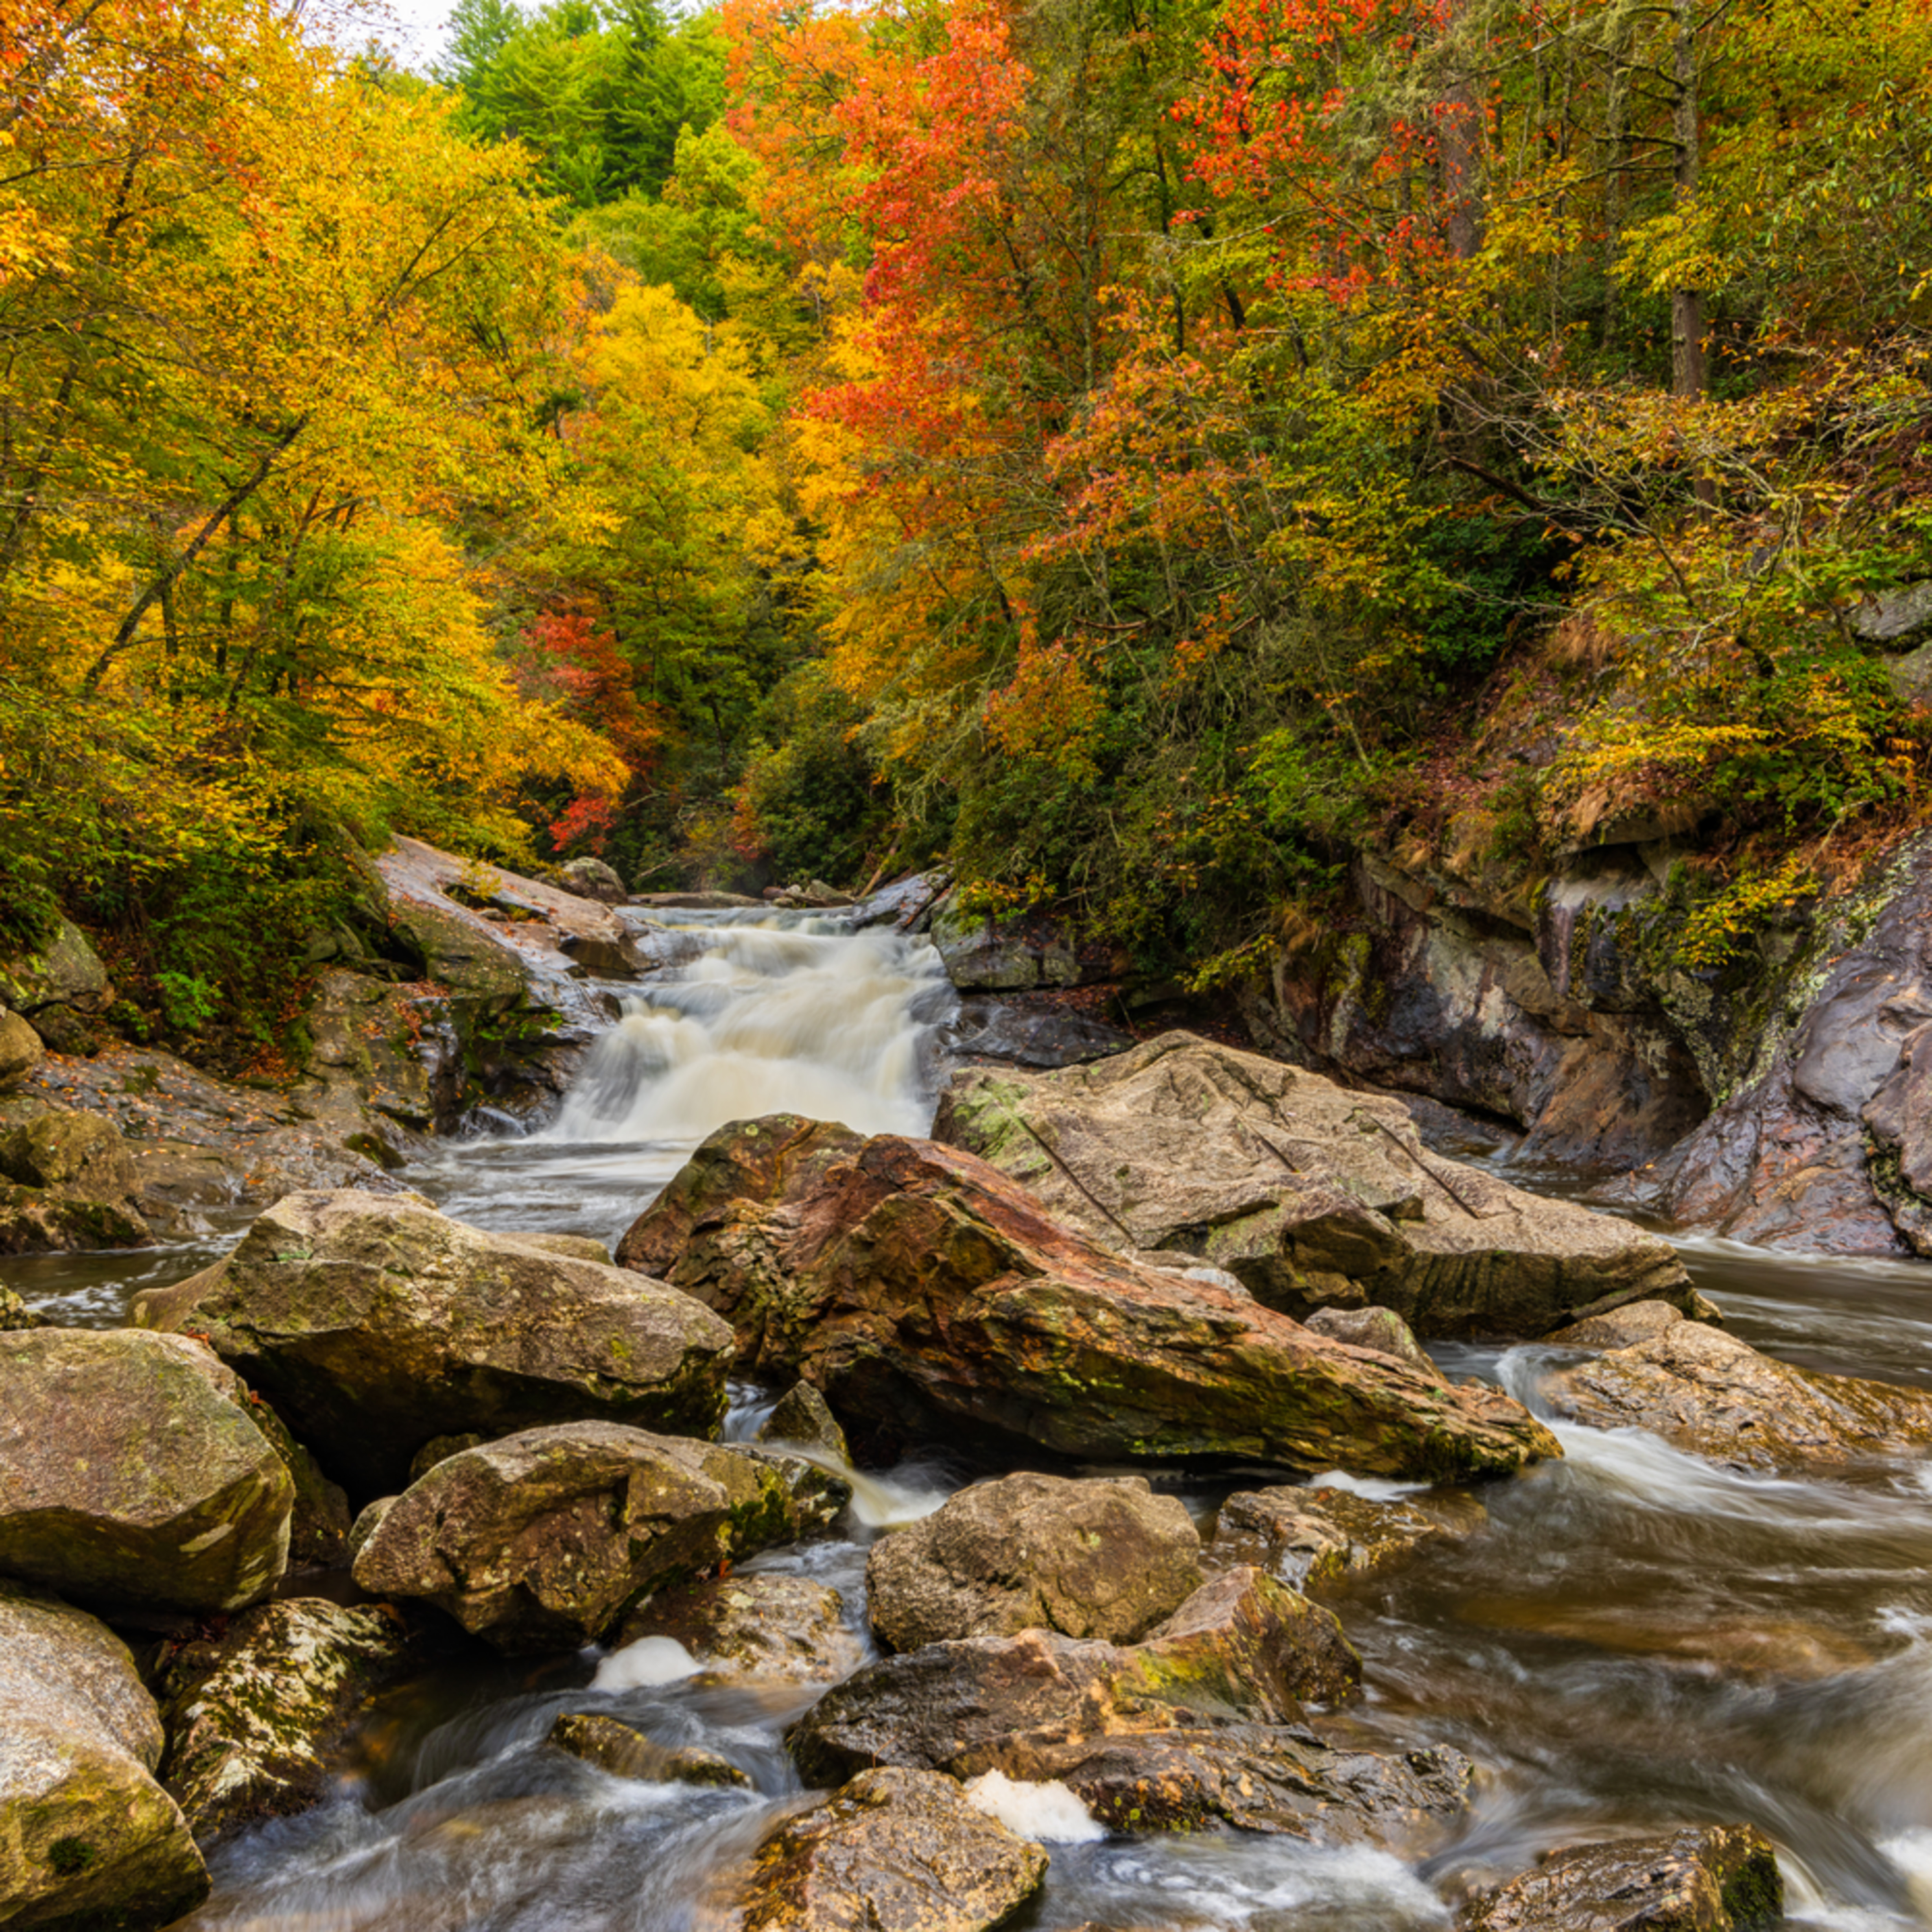 Andy crawford photography callsaja river 18102701 fwghy4